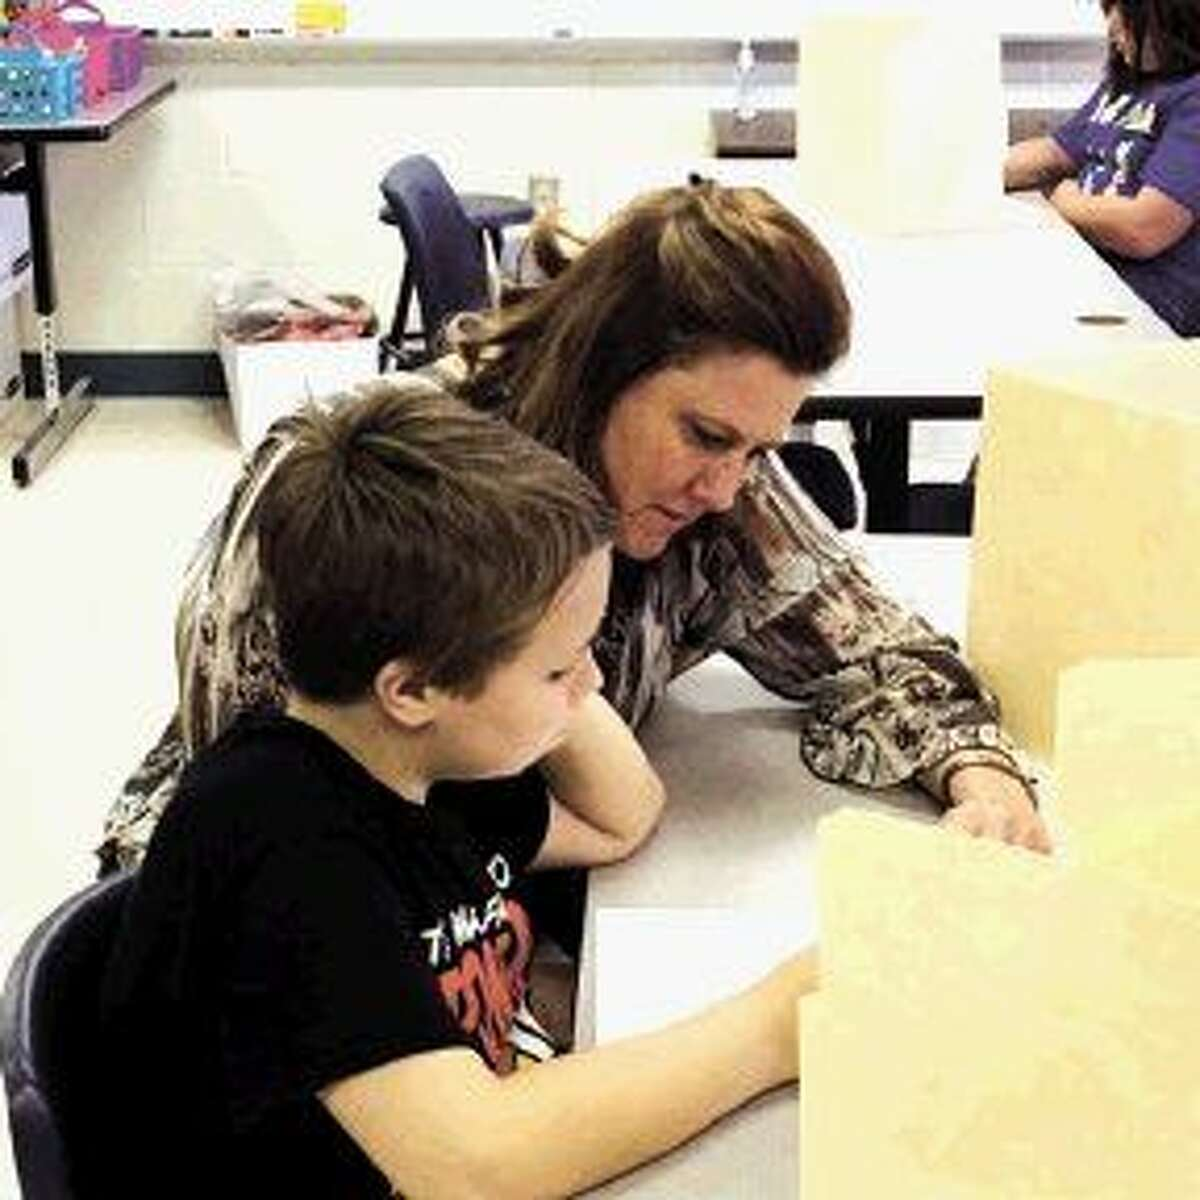 Ms. Morris, fourth grade reading teacher, has been working with Peyton on his reading skills. Peyton's goal is to be an academically advanced performer on his STAAR reading test.